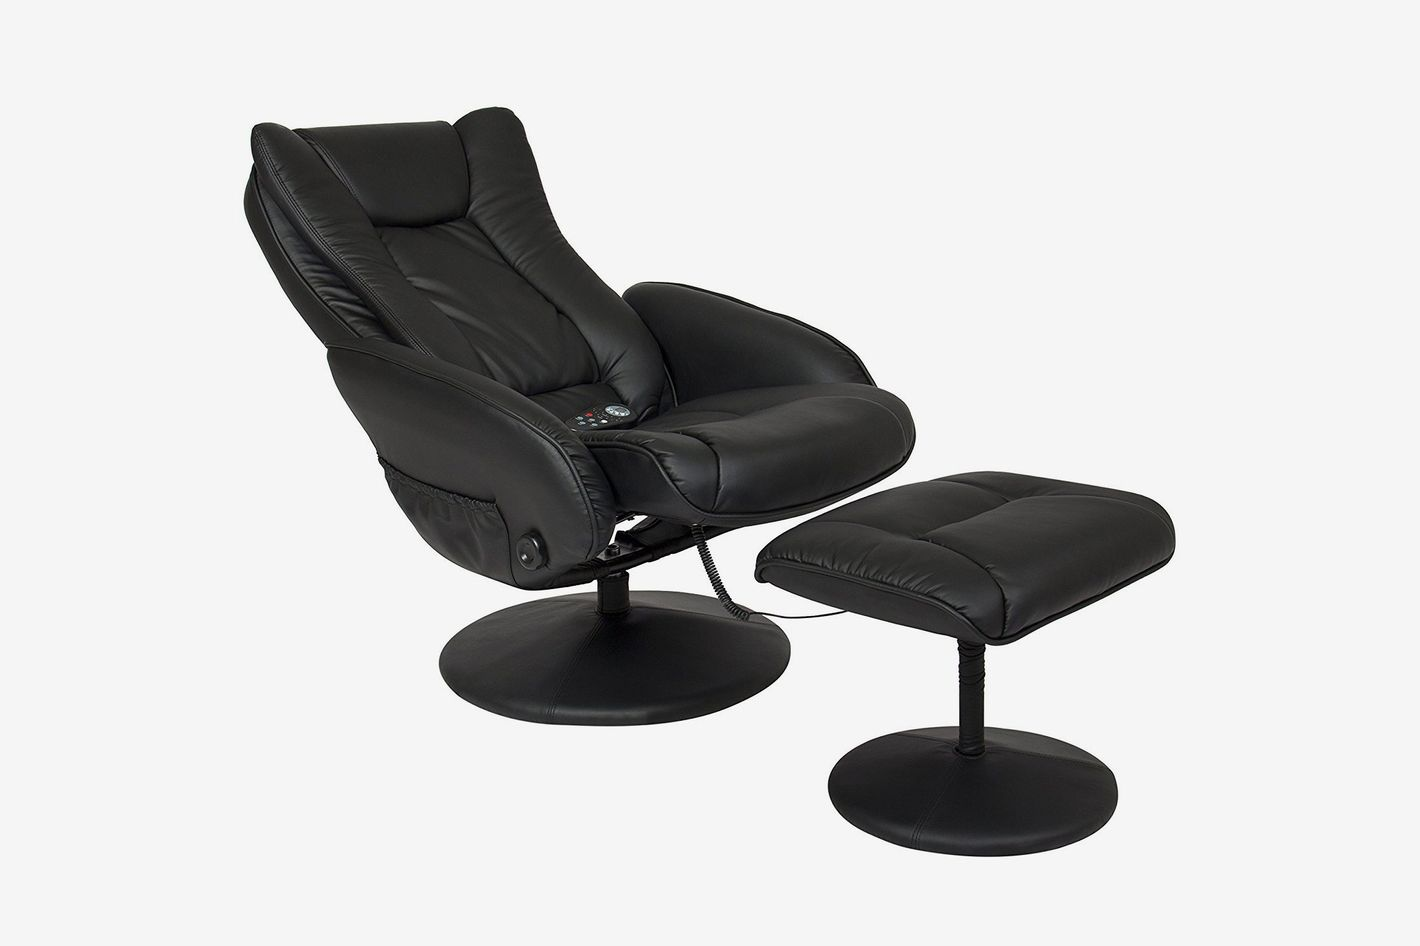 A black massage chair with an ottoman add-on.